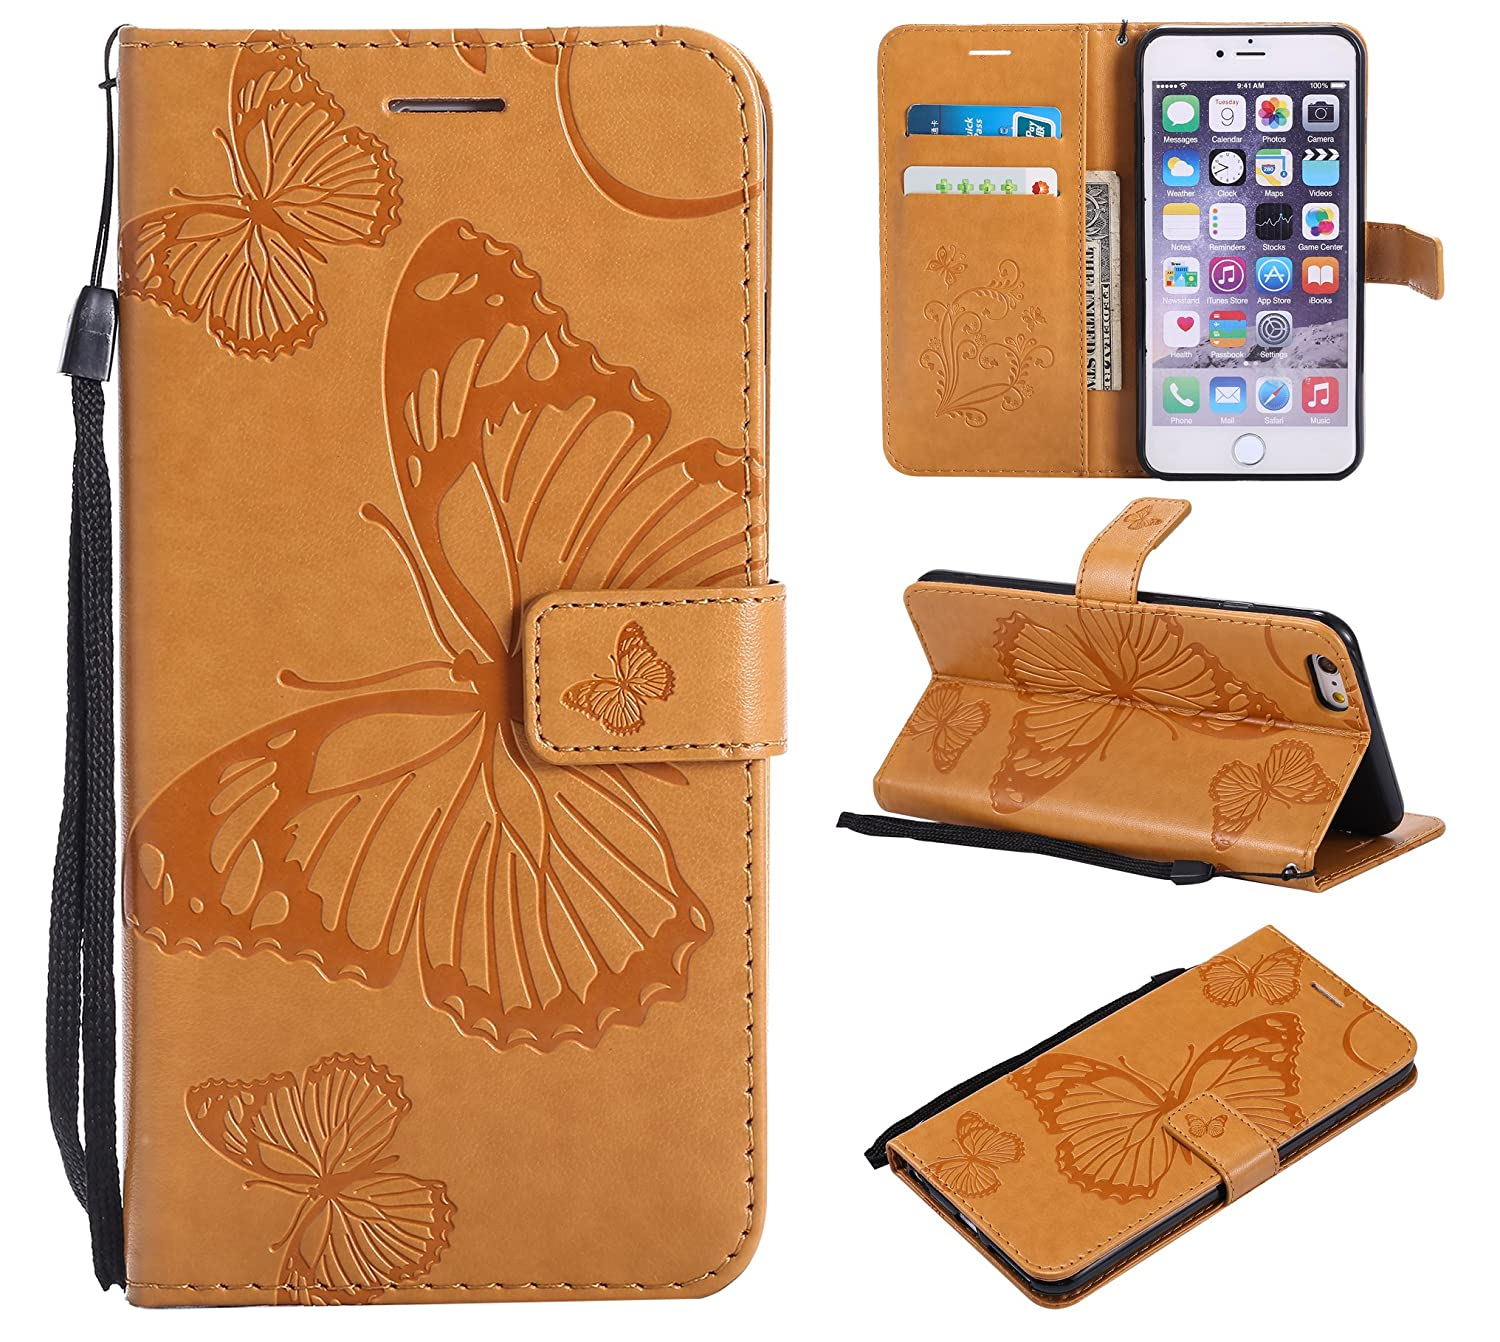 Eazyhurry Coque pour iPhone Cuir PU en Relief Motif Papillon Portefeuille Support Flip Coque Compatible iPhone SE/5/5S/6  6S/6  6S Plus/7/8/7plus/8plus/X